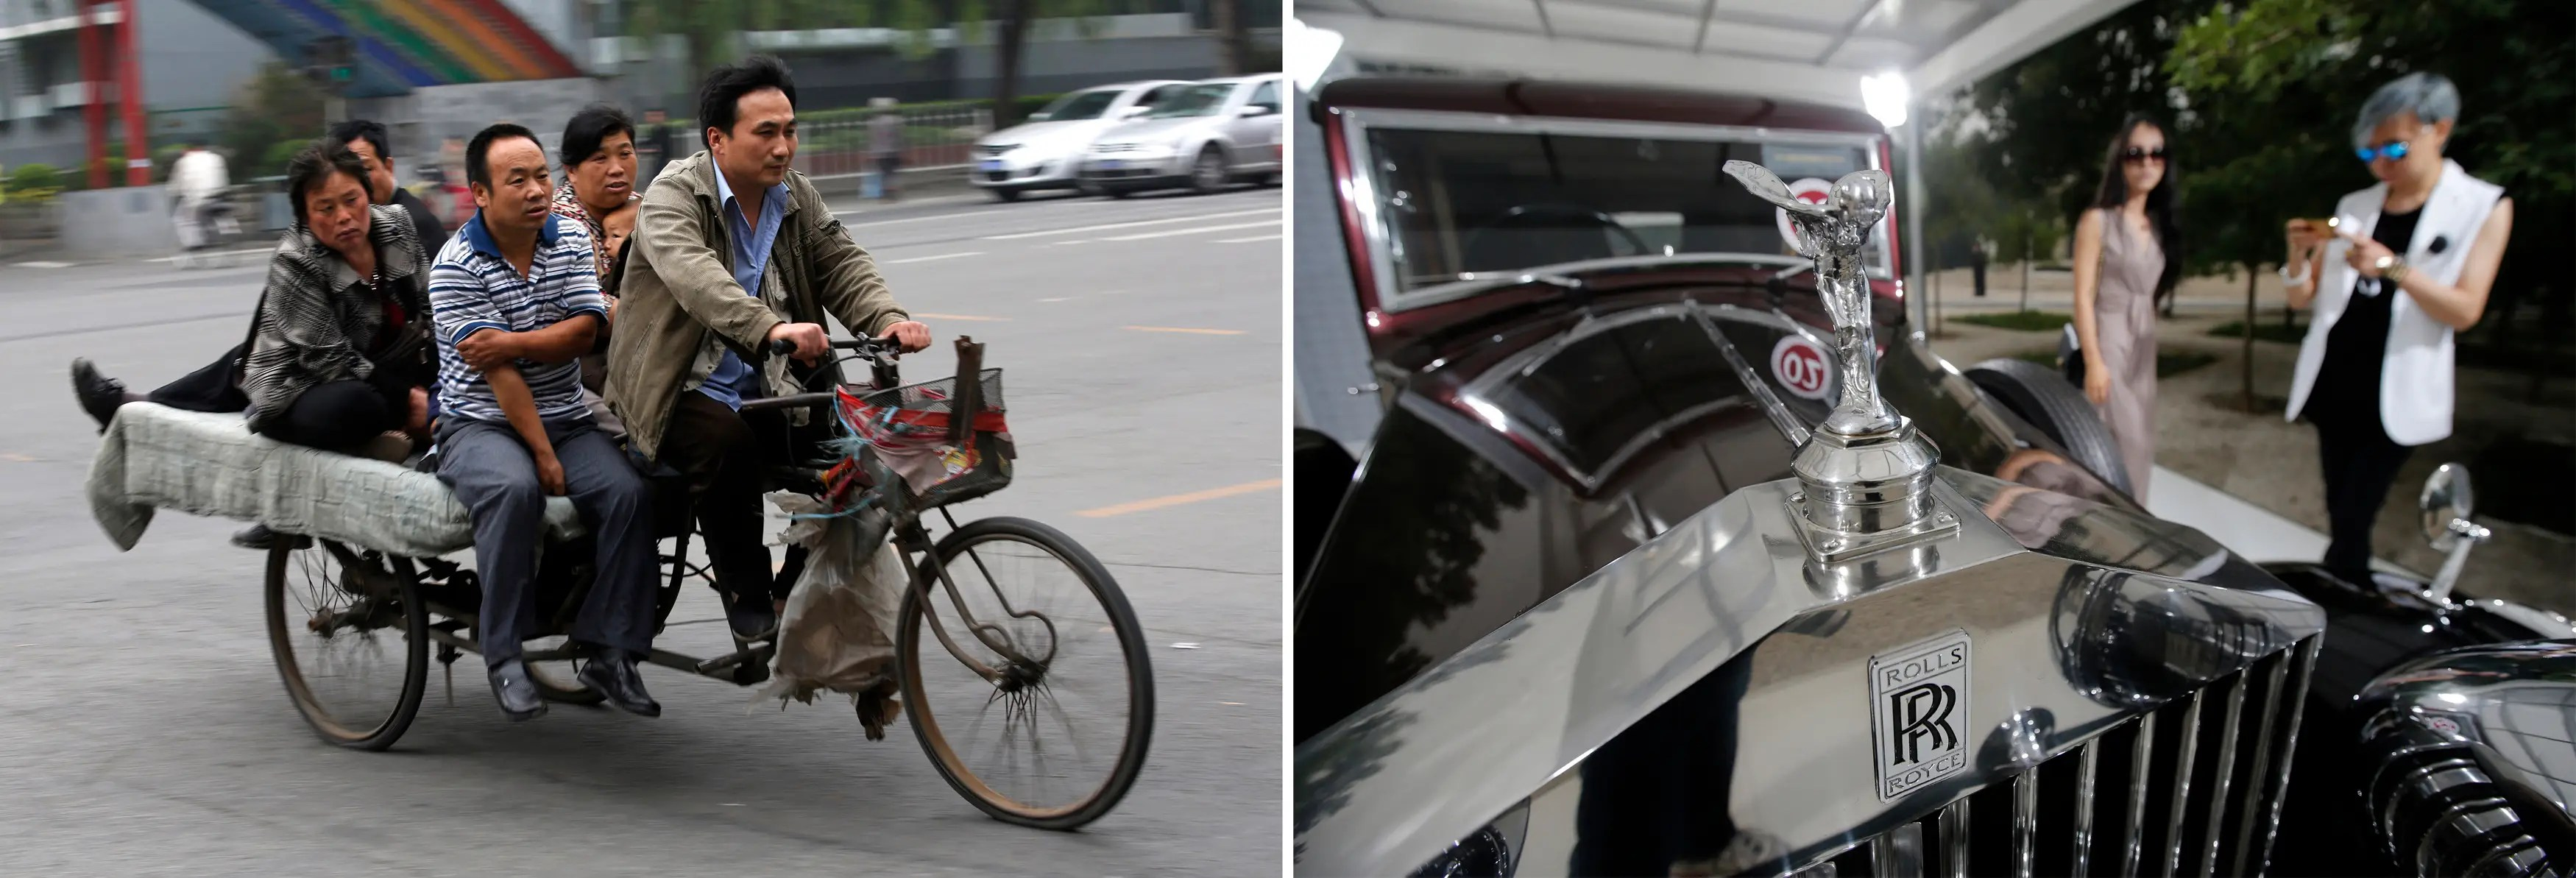 """""""A combination photograph shows (L) a man carrying family members as passengers on his electric tricycle cart in Beijing and (R) visitors look around Rolls-Royce's vintage car during the Rolls-Royce's Concours d'Elegance event for celebrating its ten years business in China."""""""